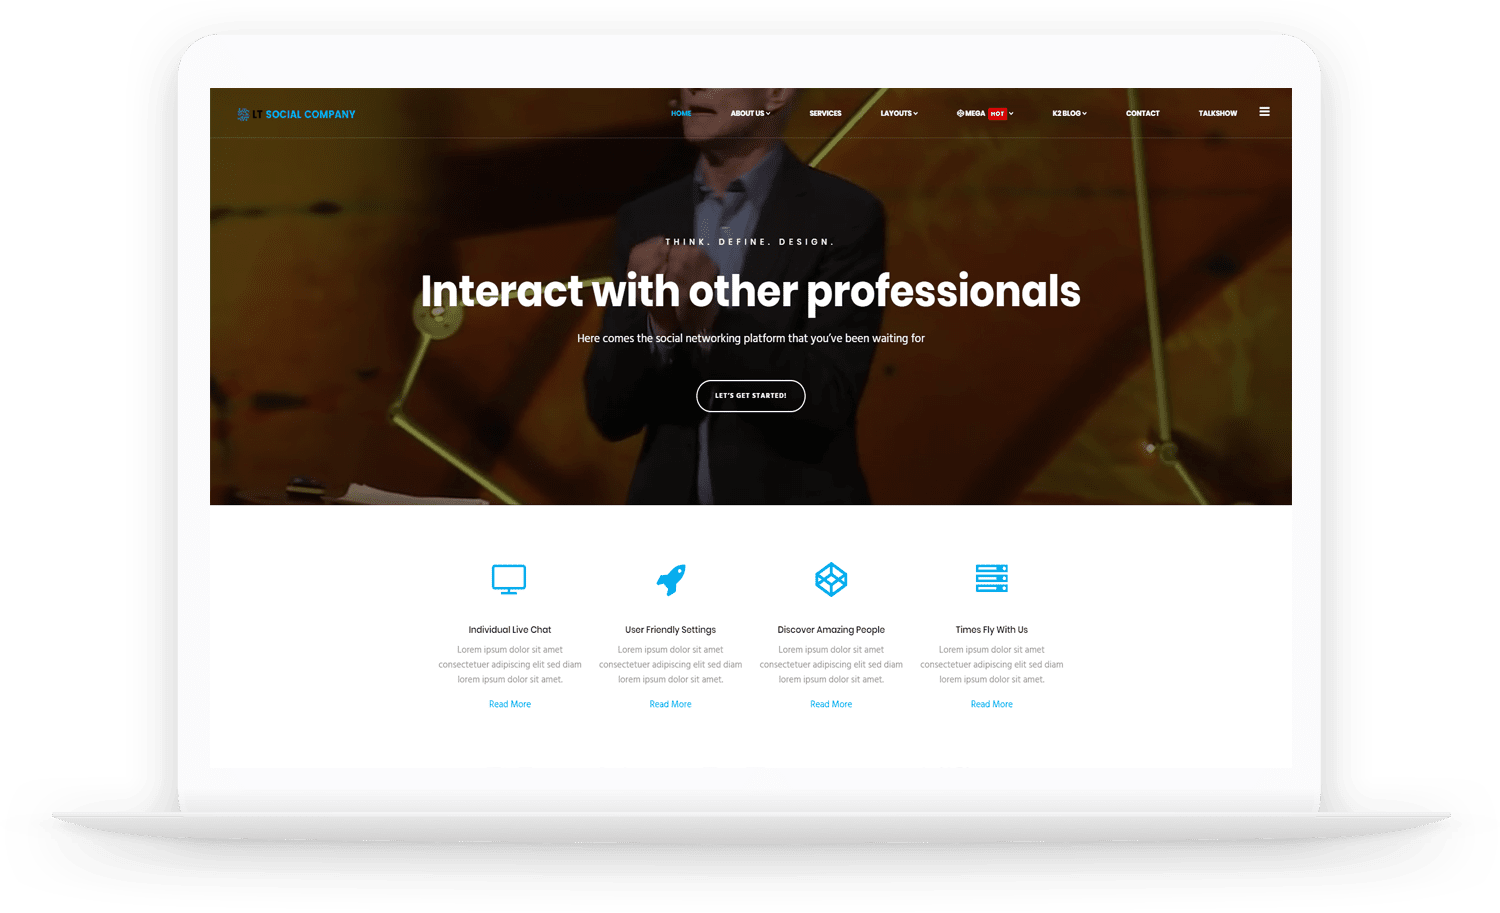 LT-Social-Company-wordpress-theme